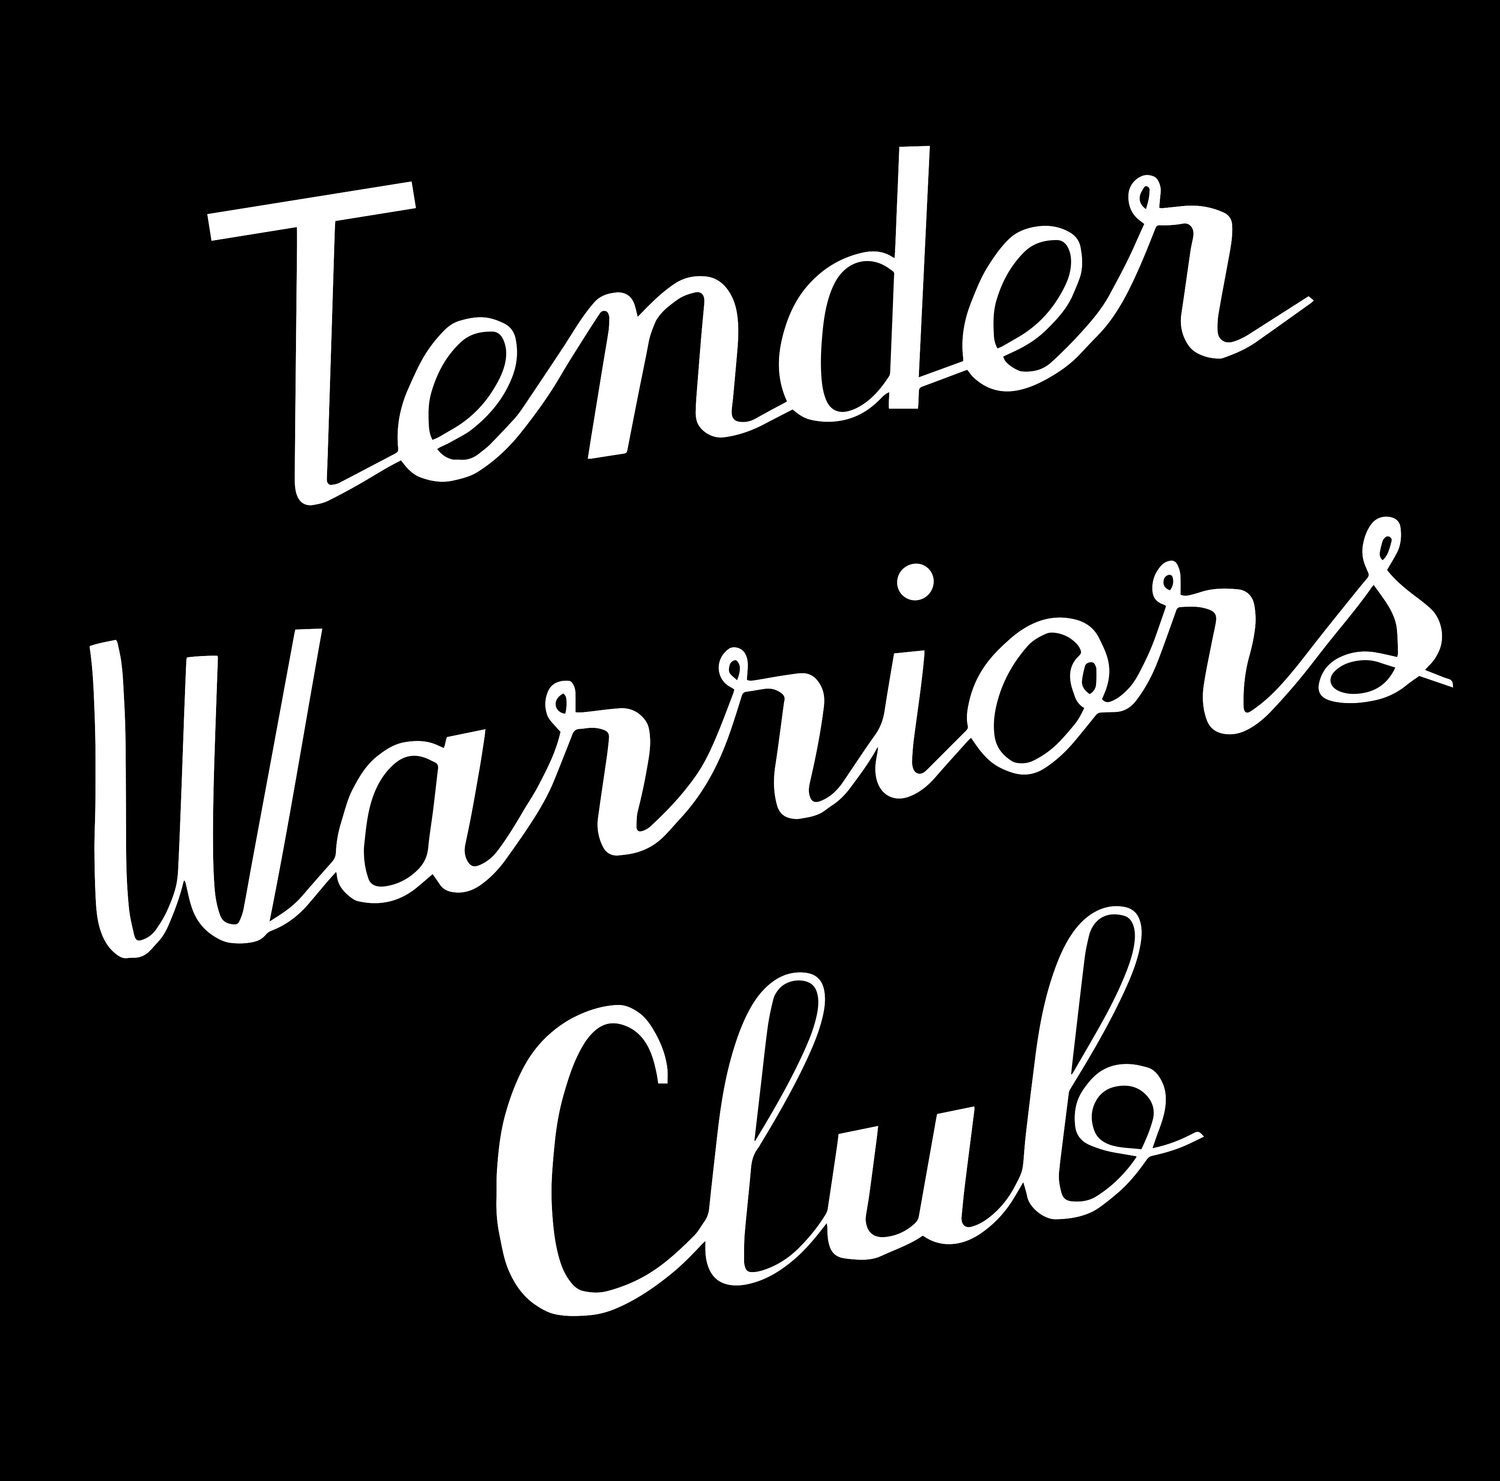 favorite albums of 2016, Tender Warriors Club by Lady Lamb